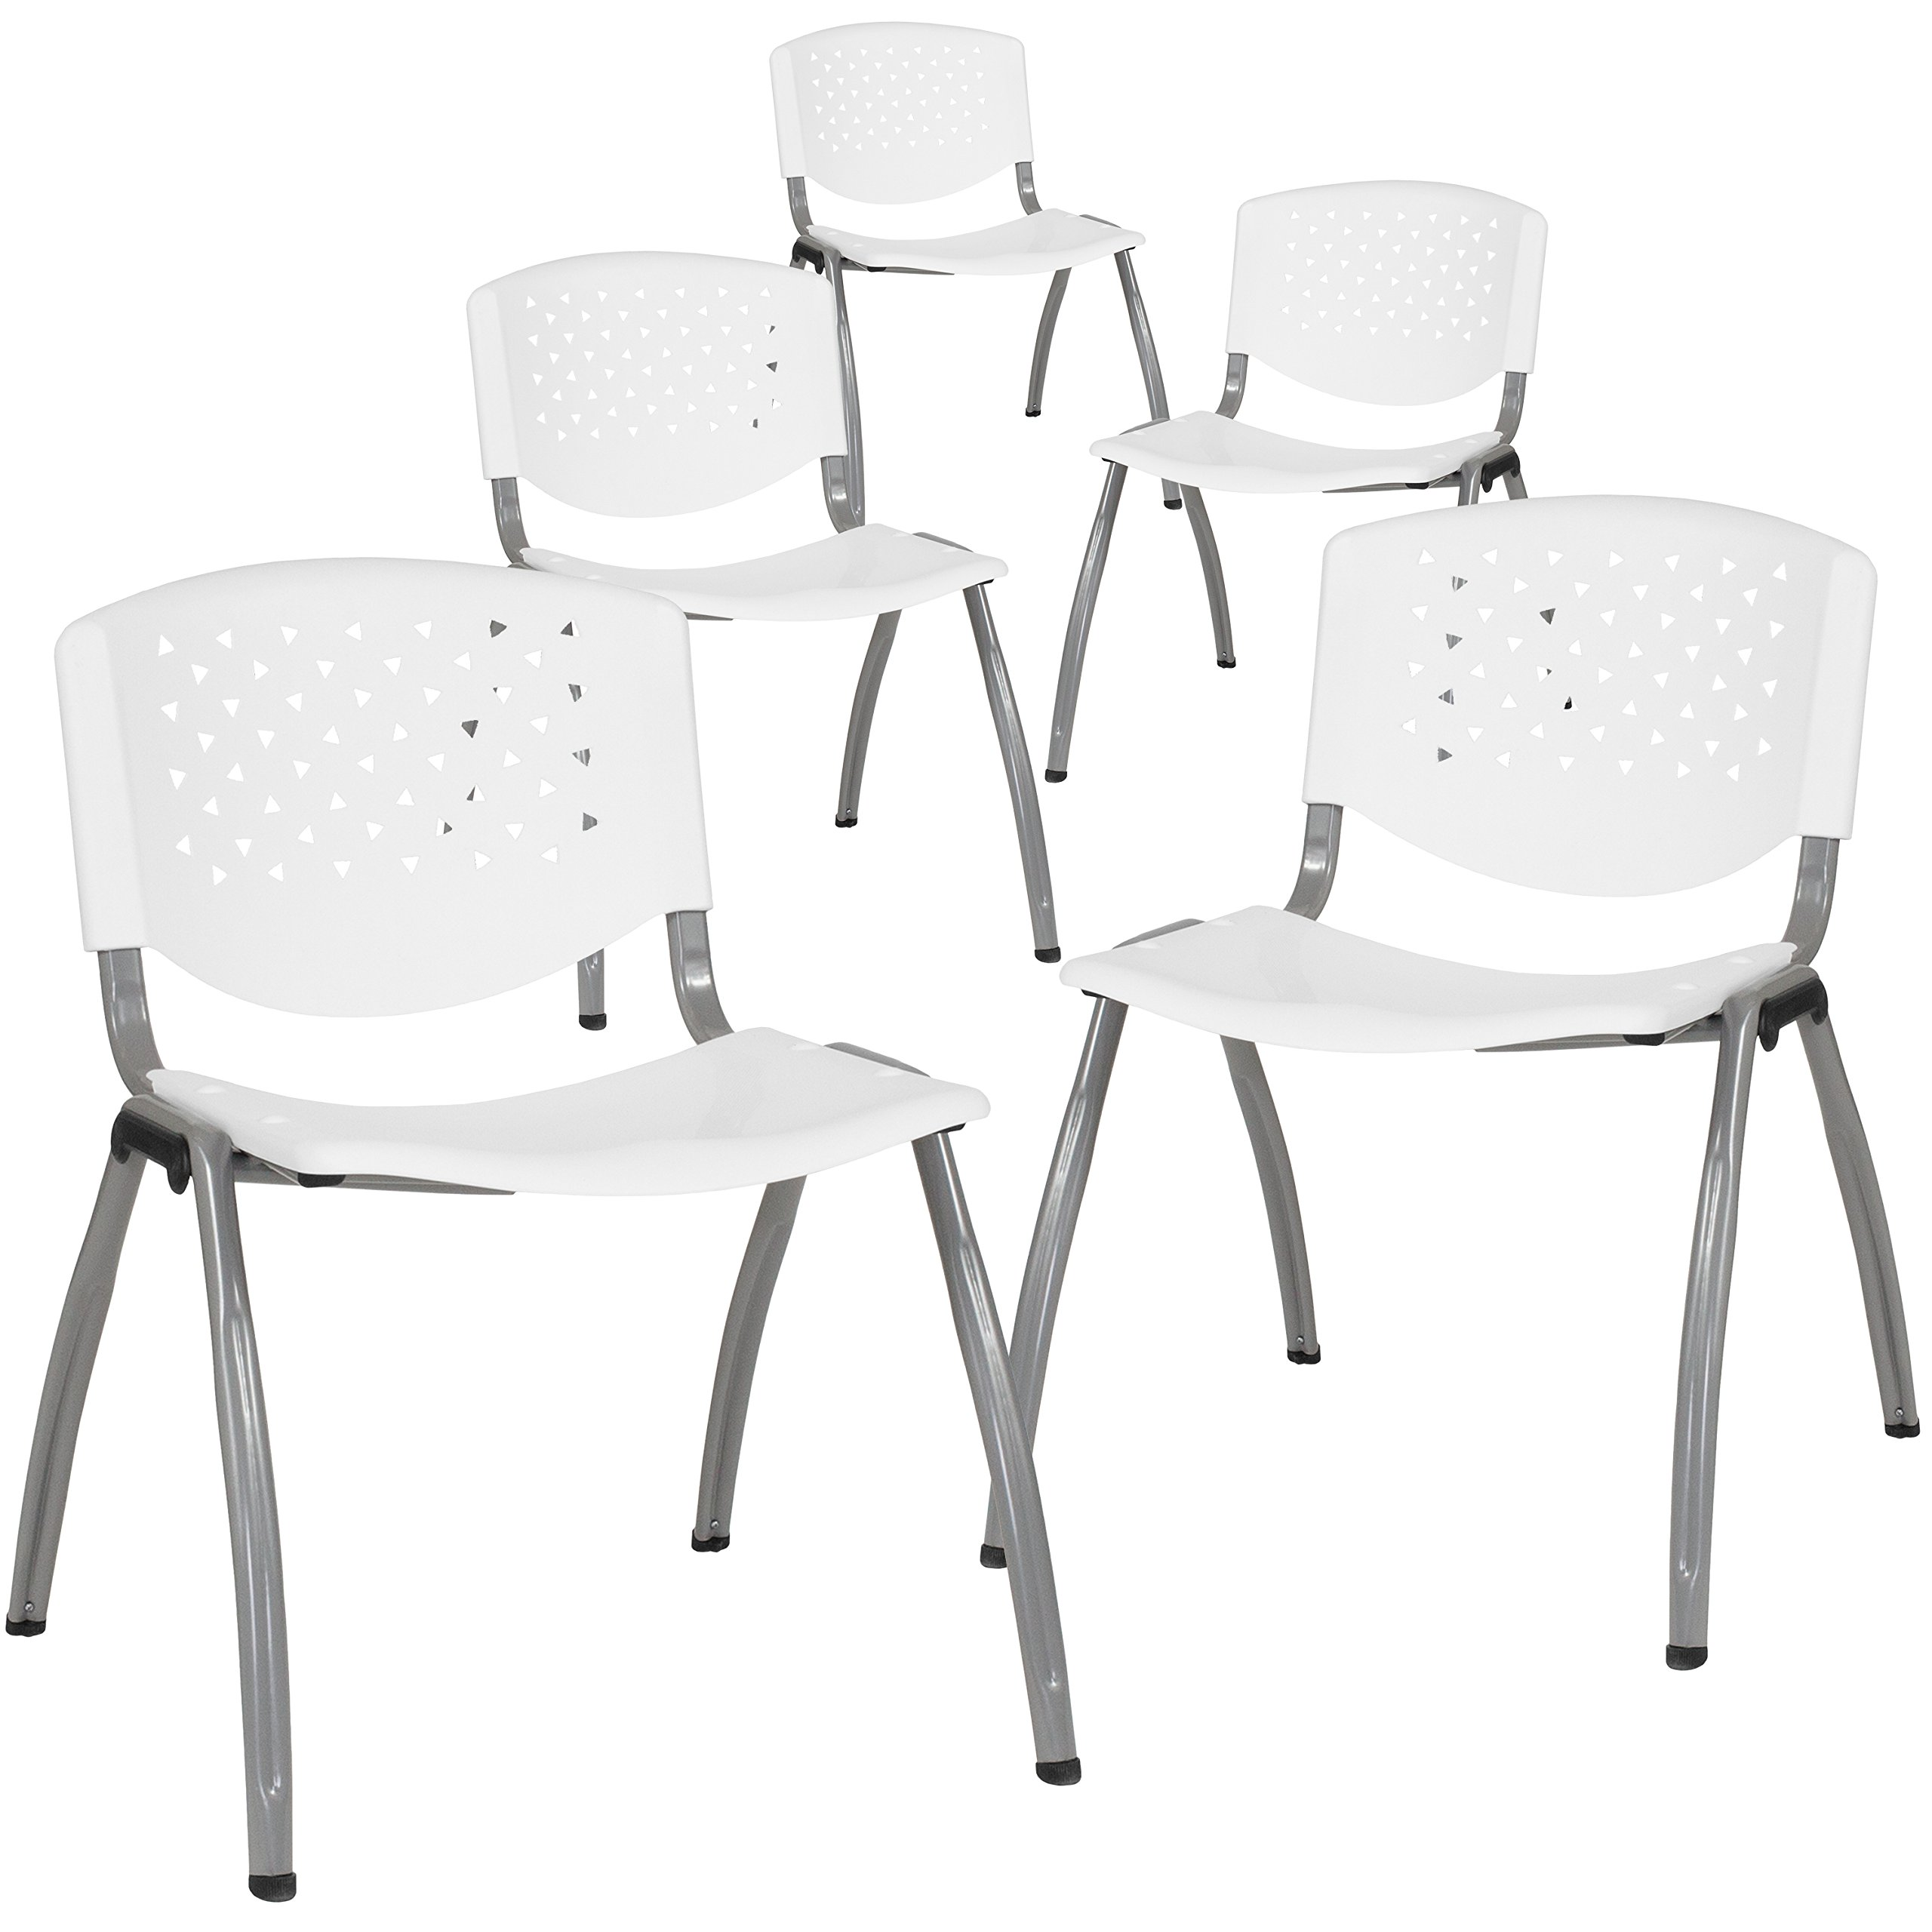 Flash Furniture 5-RUT-F01A-WH-GG White Plastic Stack Chairs, 5 Pack, by Flash Furniture